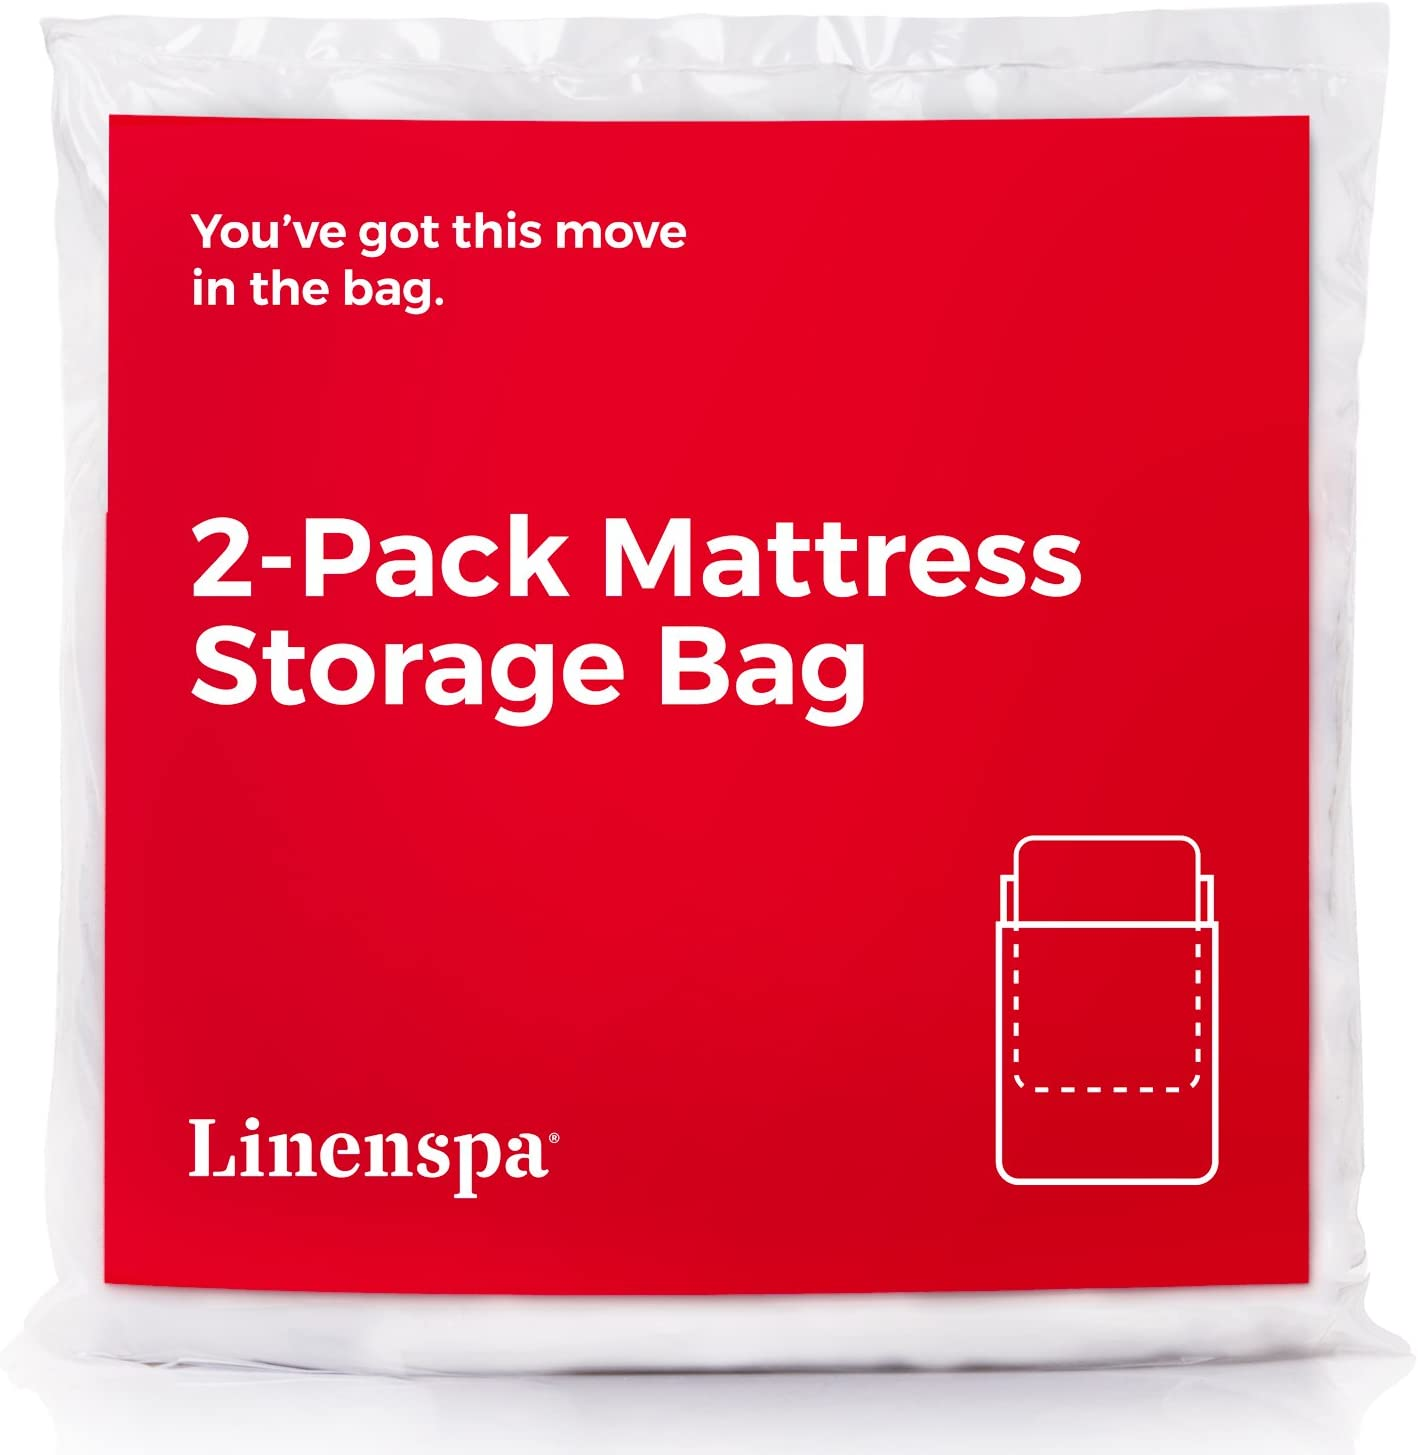 Linenspa Mattress Bag for Moving, Storage and Disposal